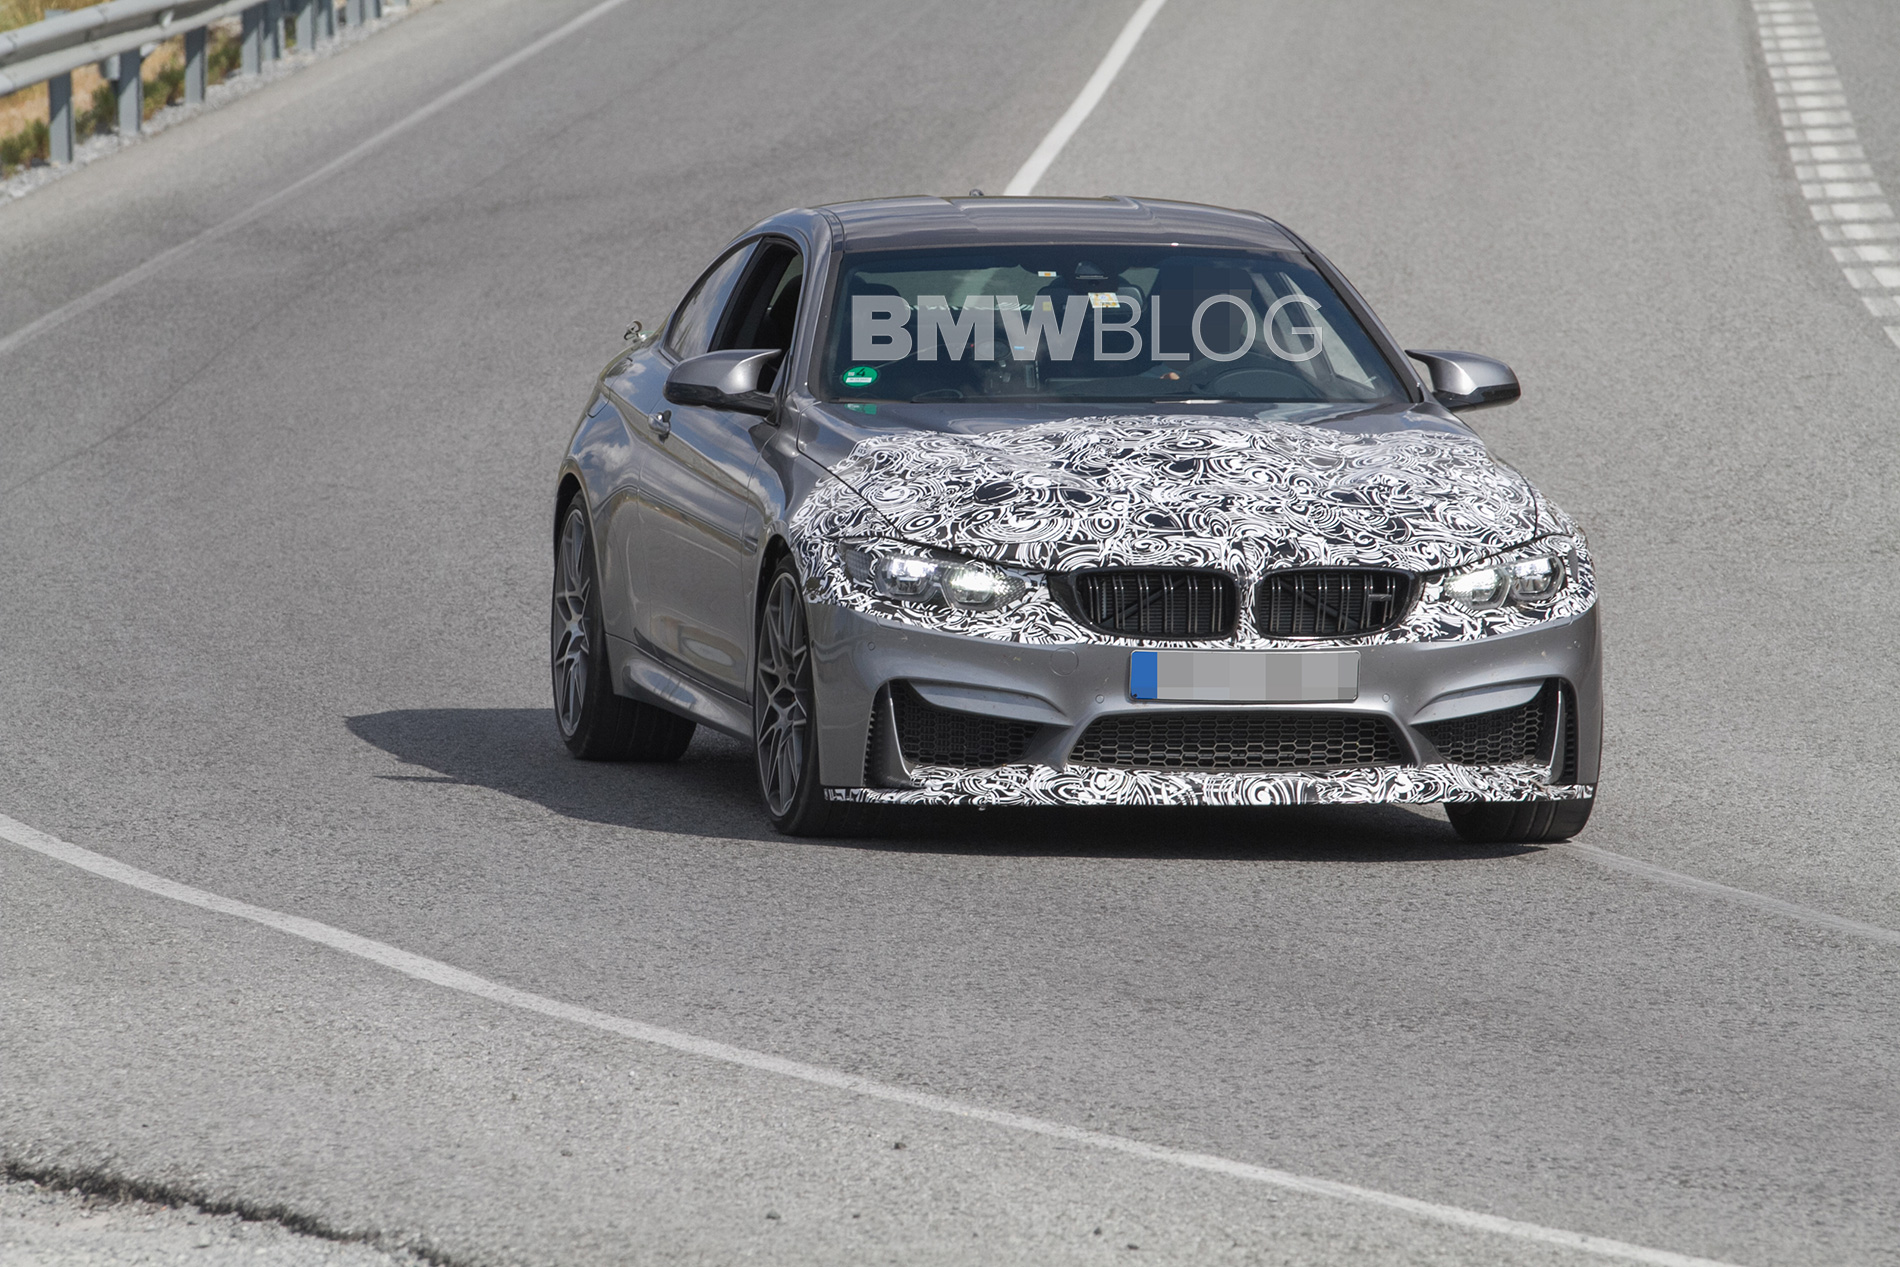 2017 BMW M4 Facelift spy photos 5